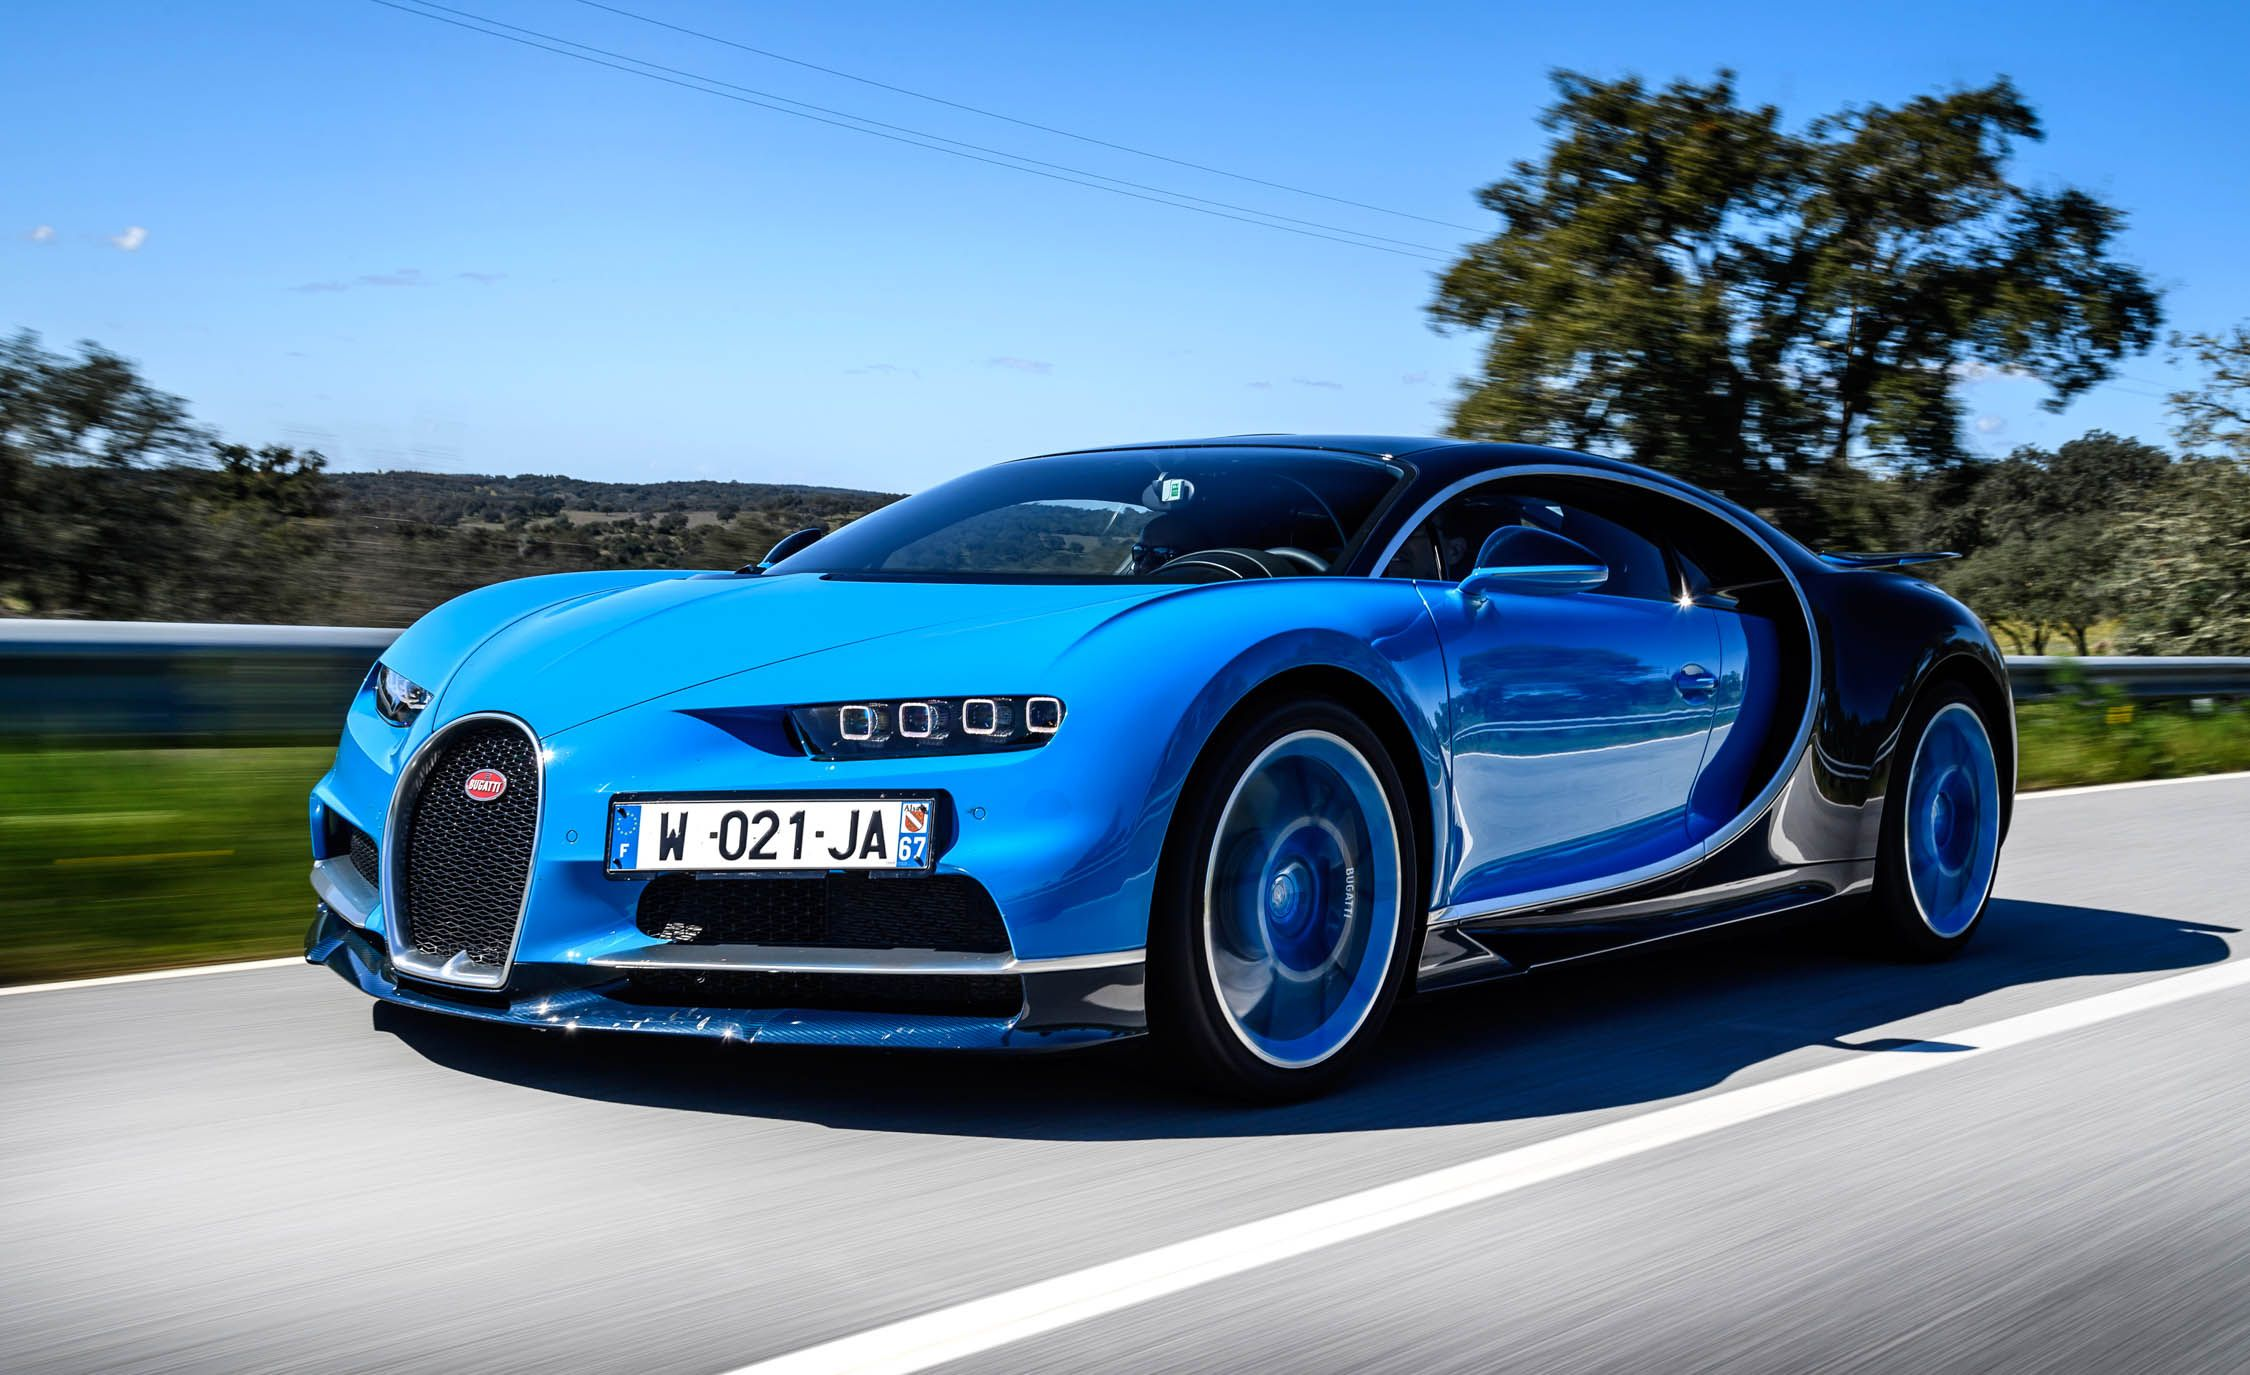 2019 bugatti chiron reviews | bugatti chiron price, photos, and